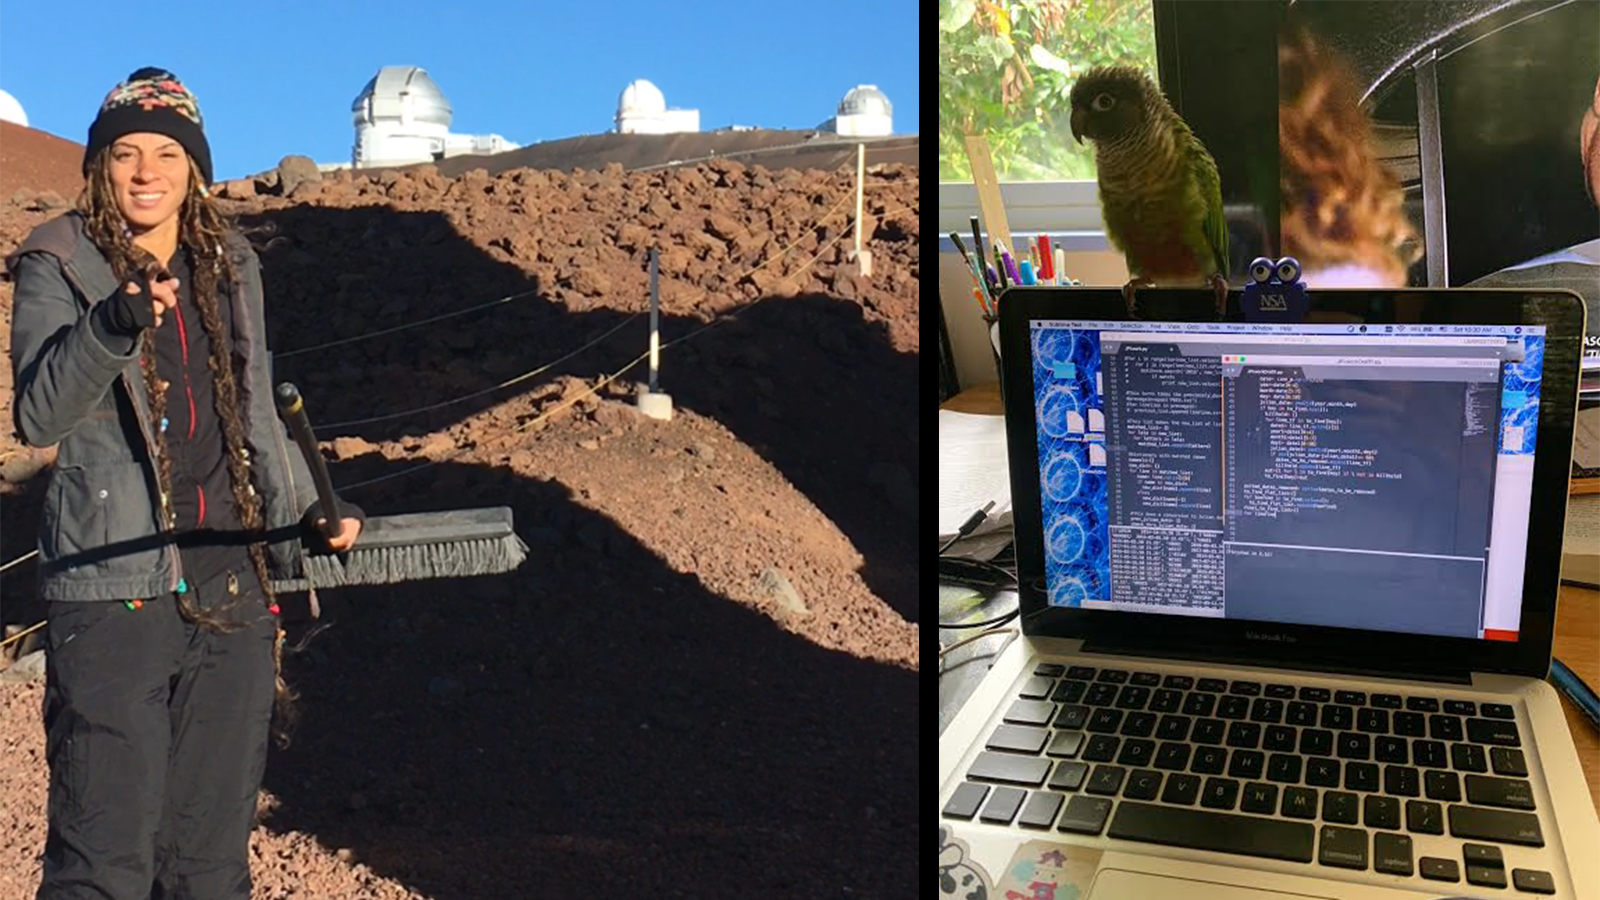 In the image on the left, Jennifer Brag stands in front of a series of observatories. In the image on the right, her bird is pirched on top of open laptop.